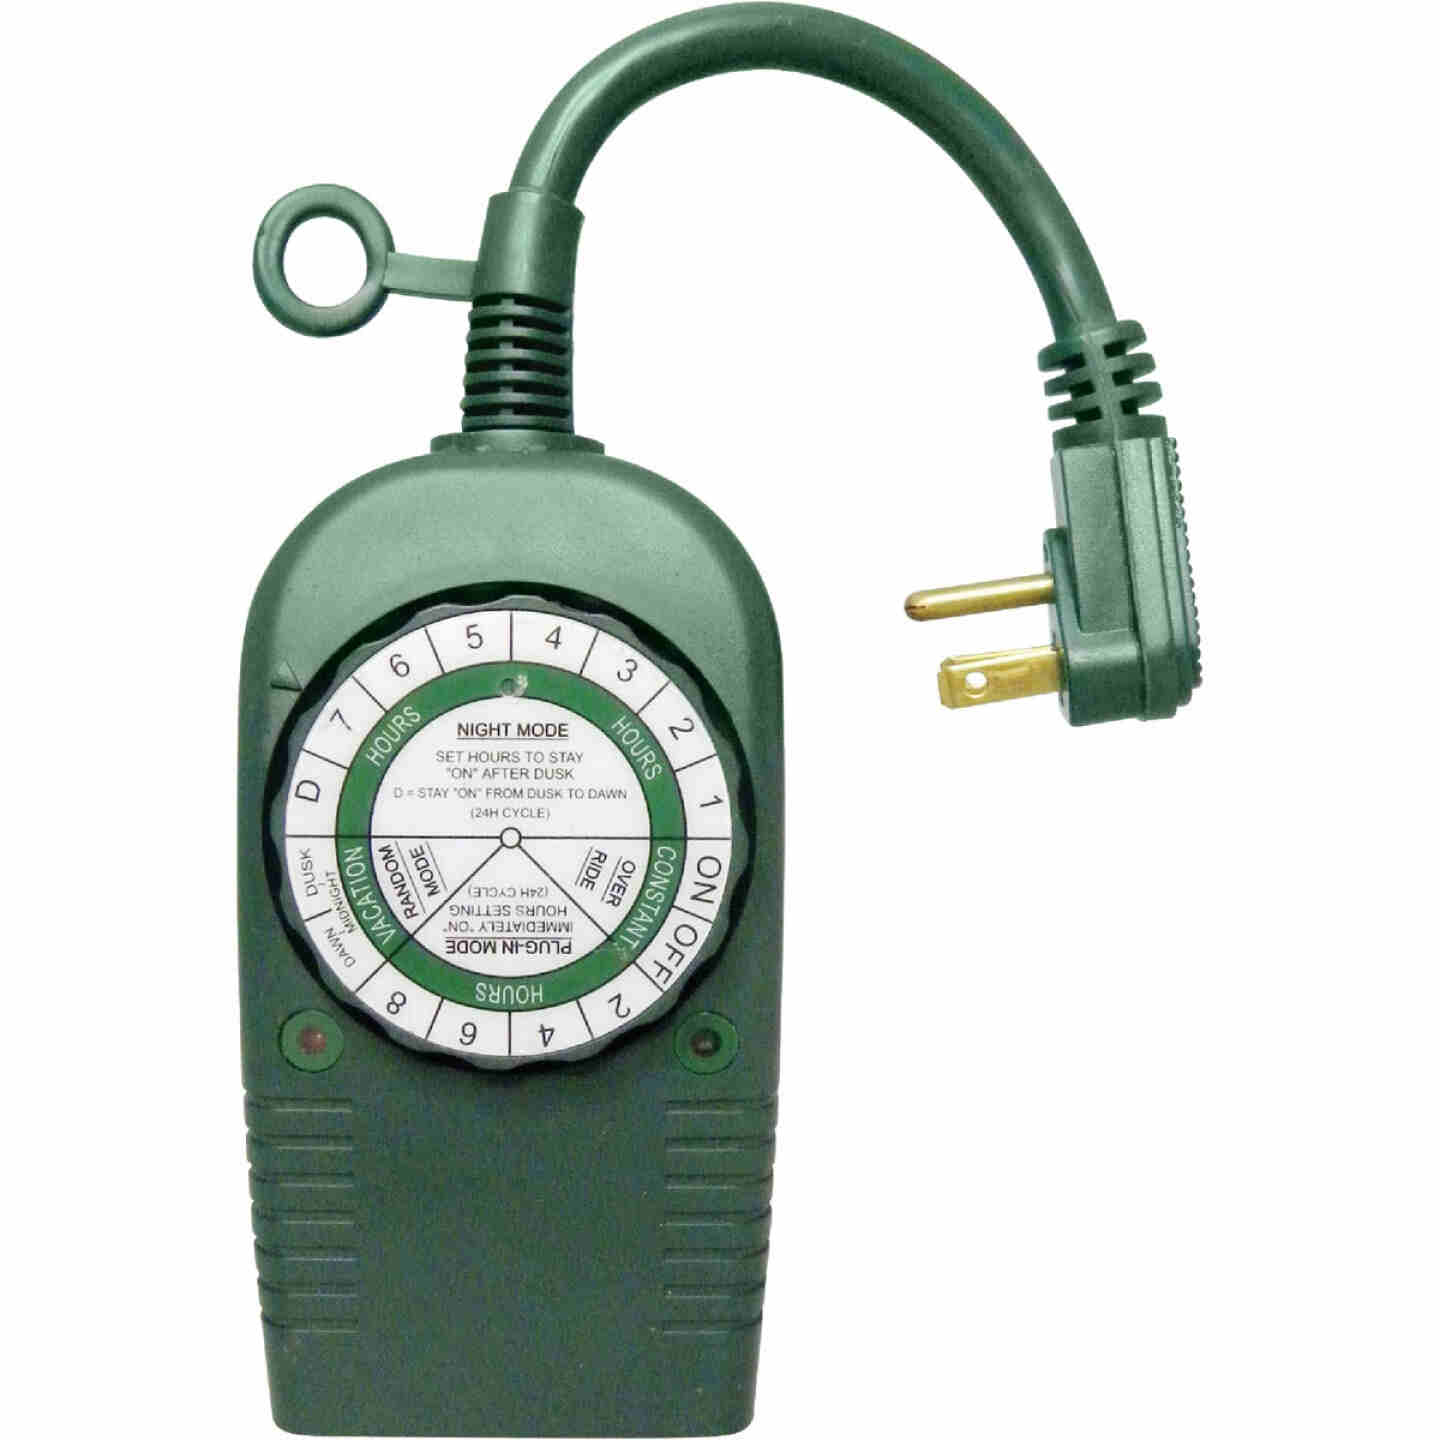 Do it 12.5A 120V 1500W Green Outdoor Timer Image 1